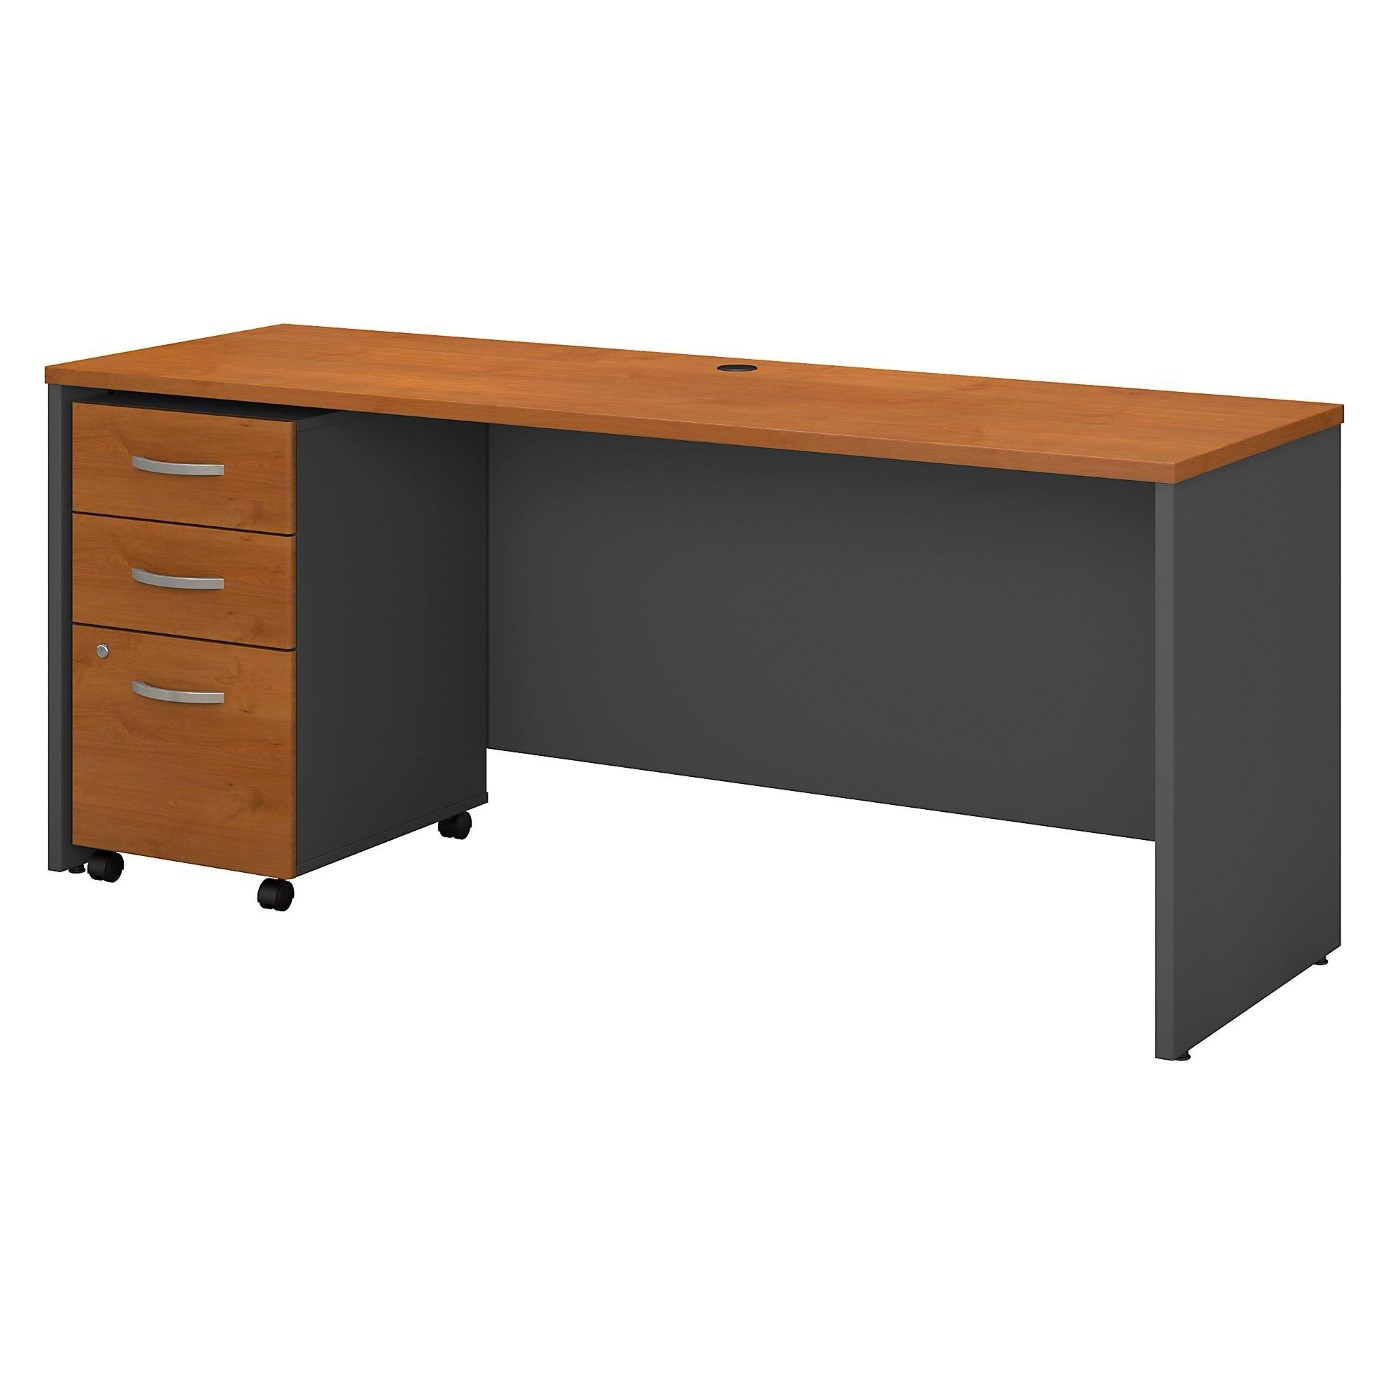 <font color=#c60><b>BUSH BUSINESS FURNITURE SERIES C 72W X 24D OFFICE DESK WITH MOBILE FILE CABINET. FREE SHIPPING</font></b>